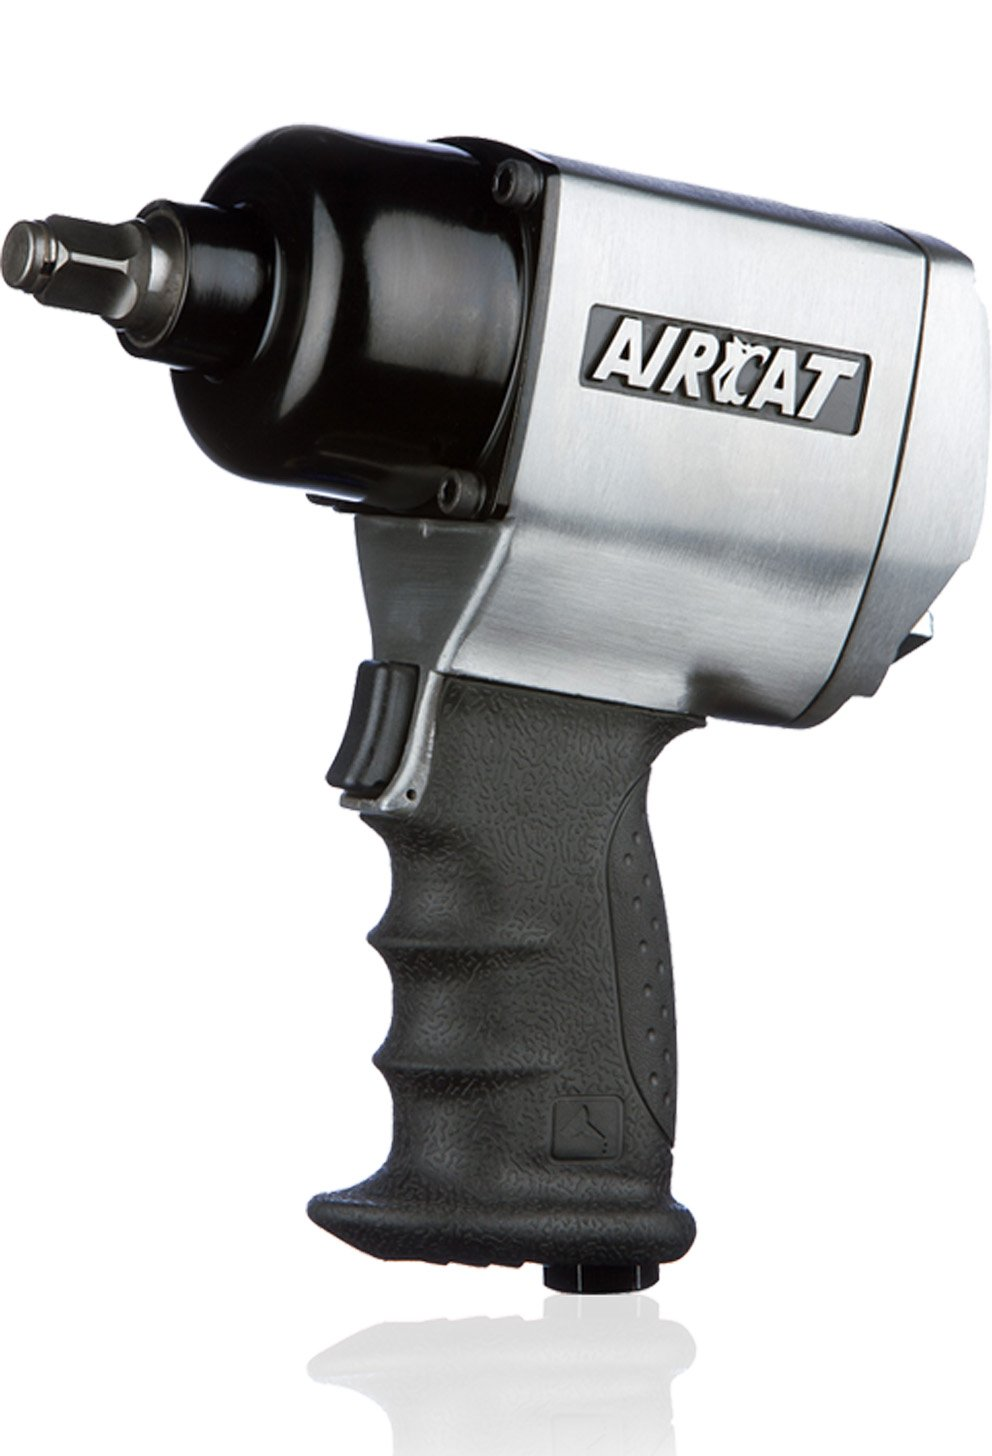 AIRCAT 1404 1 2-Inch Brushed Aluminum Impact Wrench